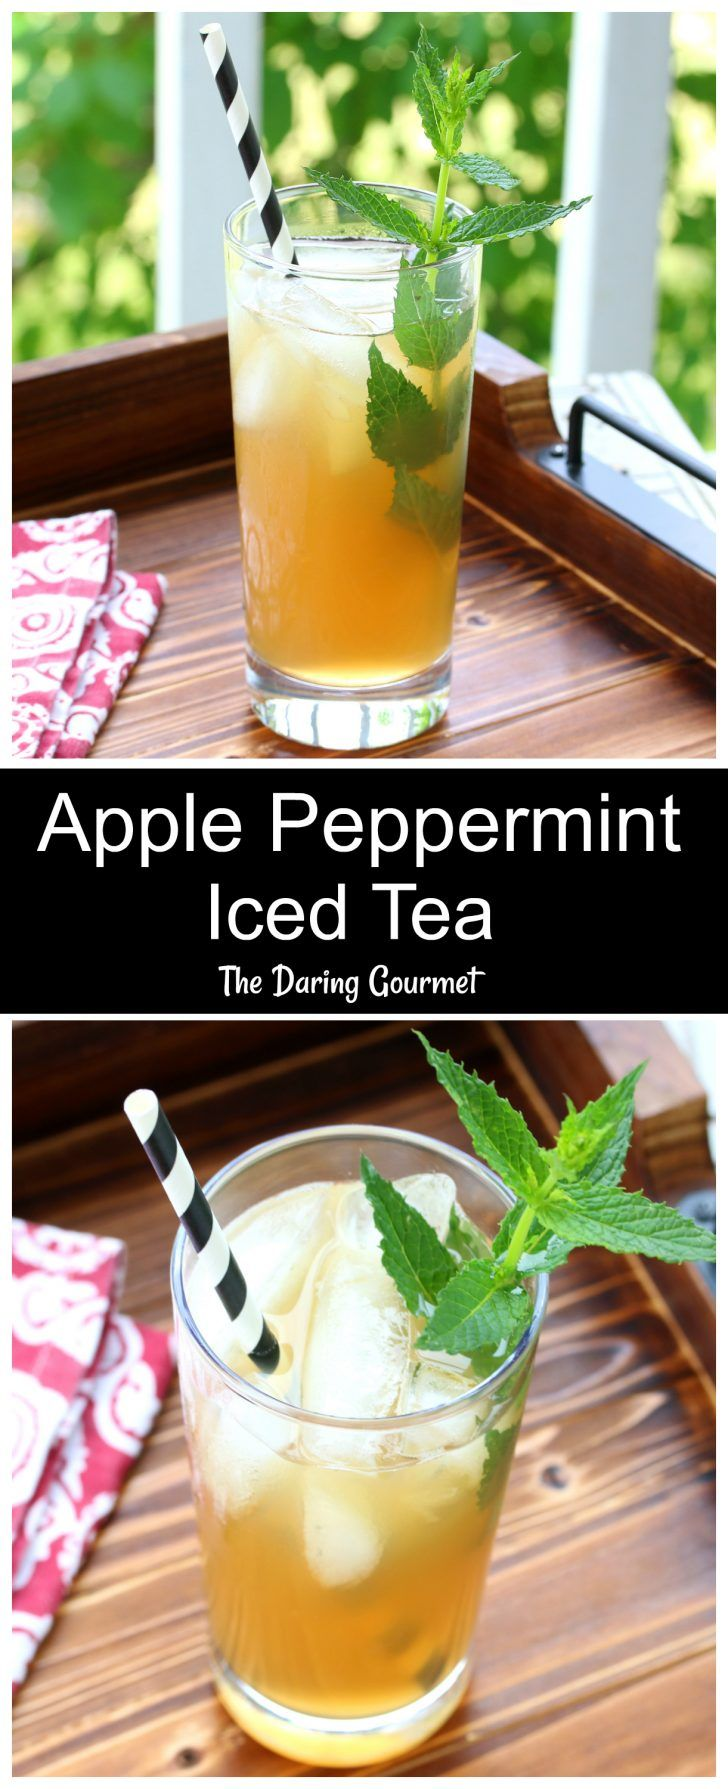 how to make peppermint tea from fresh peppermint